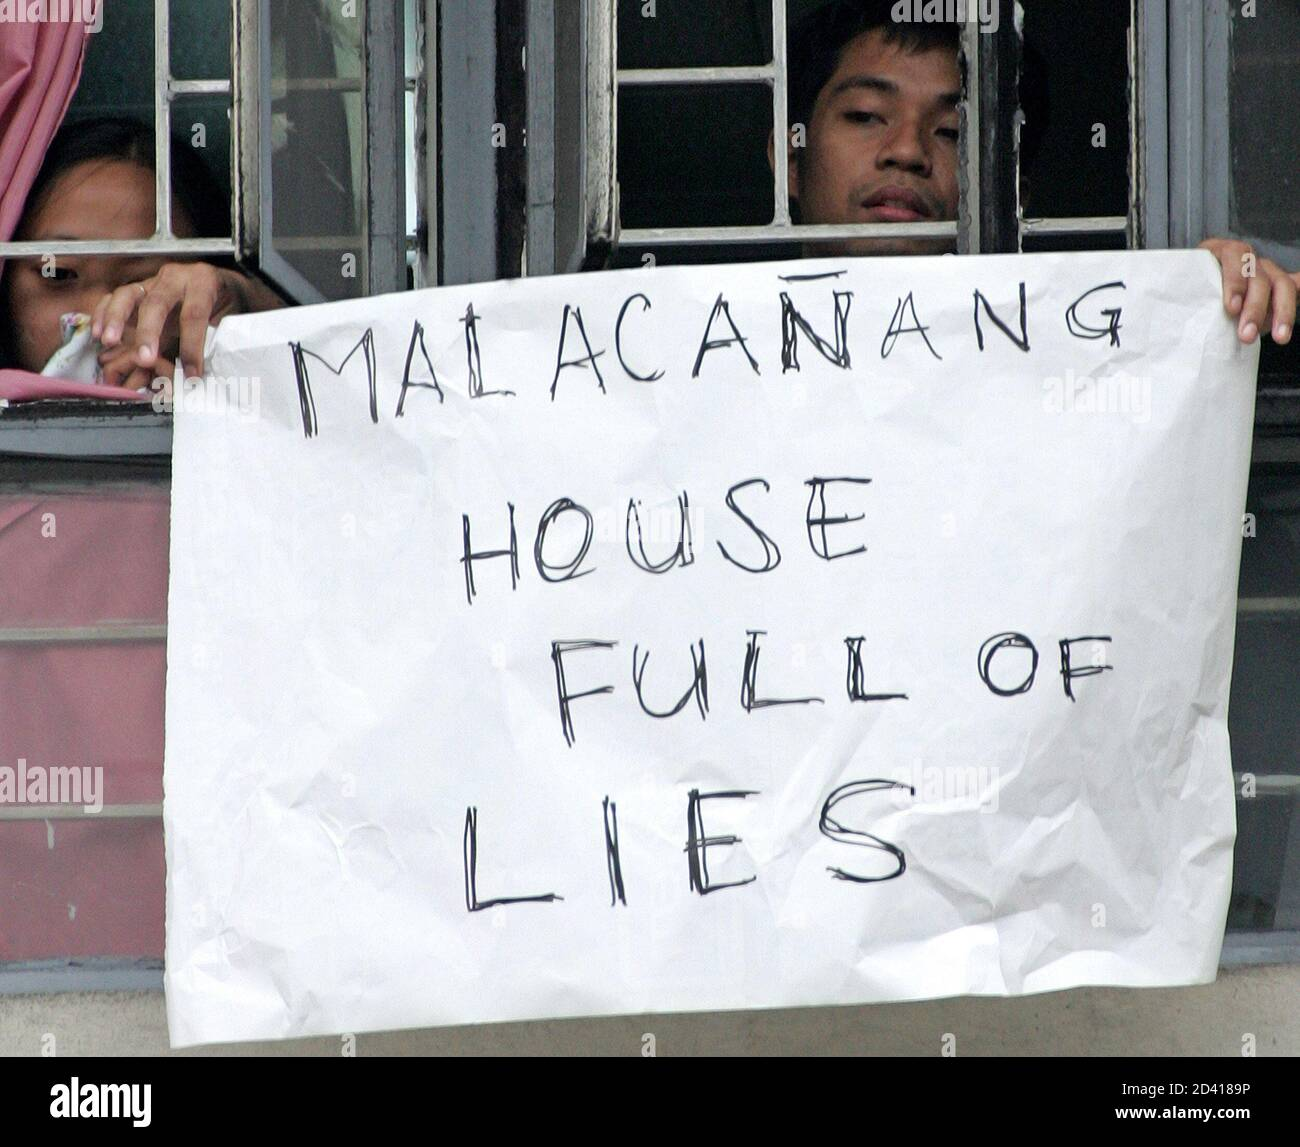 Filipino students display an anti-government sign from a school window during a protest demanding the resignation of Philippine President Gloria Macapagal Arroyo in Manila July 22, 2005. The Philippine opposition said on Friday it fears the government will try to scuttle its impeachment case against Arroyo and vowed more street protests if their bid to unseat her fails. REUTERS/Romeo Ranoco  RR/CCK Stock Photo